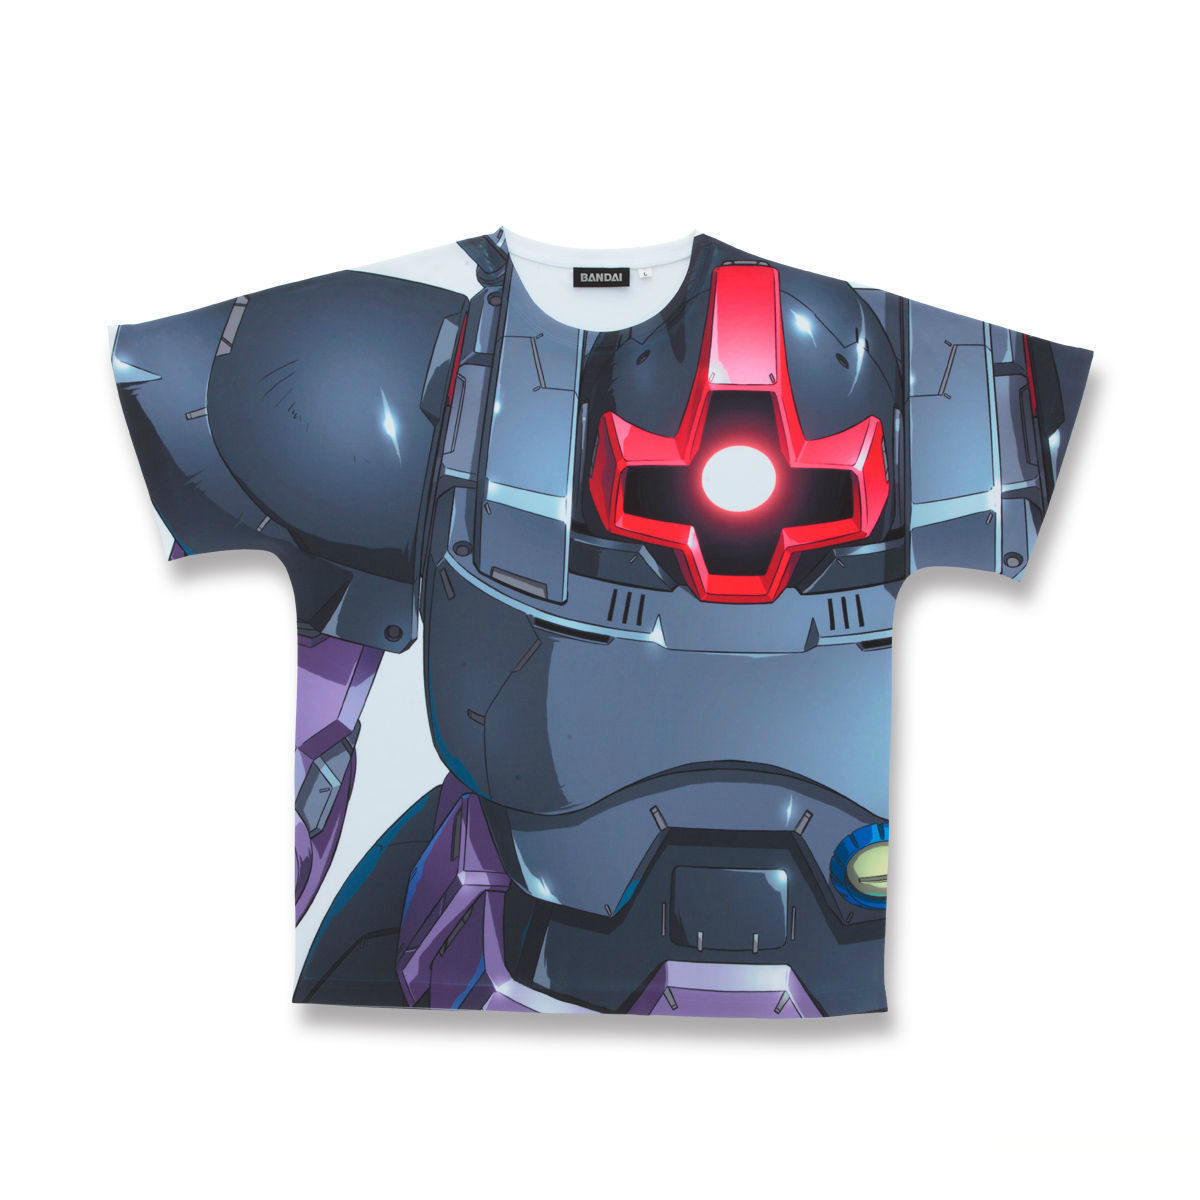 Mobile Suit Gundam MS-09 All-Over Print T-shirt